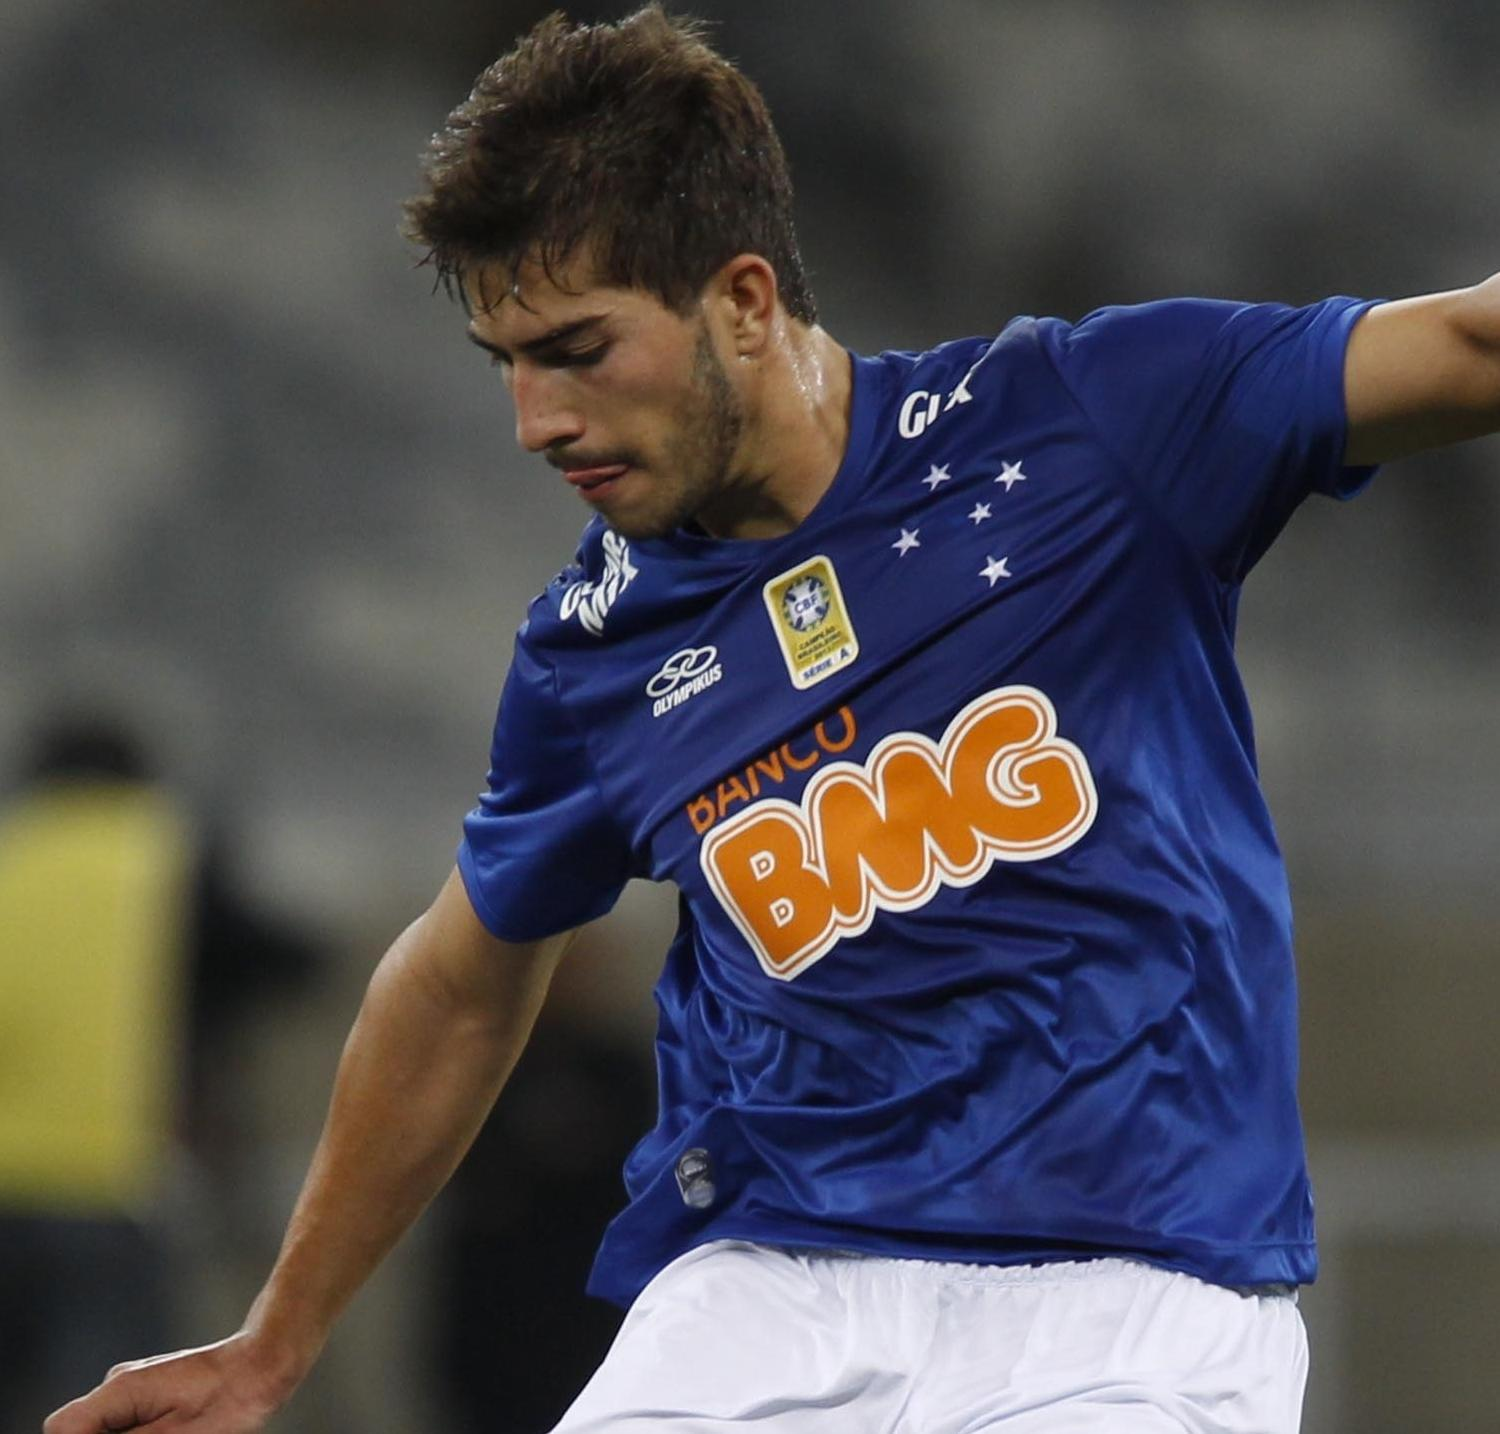 Lucas Silva: Lucas Silva To Real Madrid: Latest Transfer News And